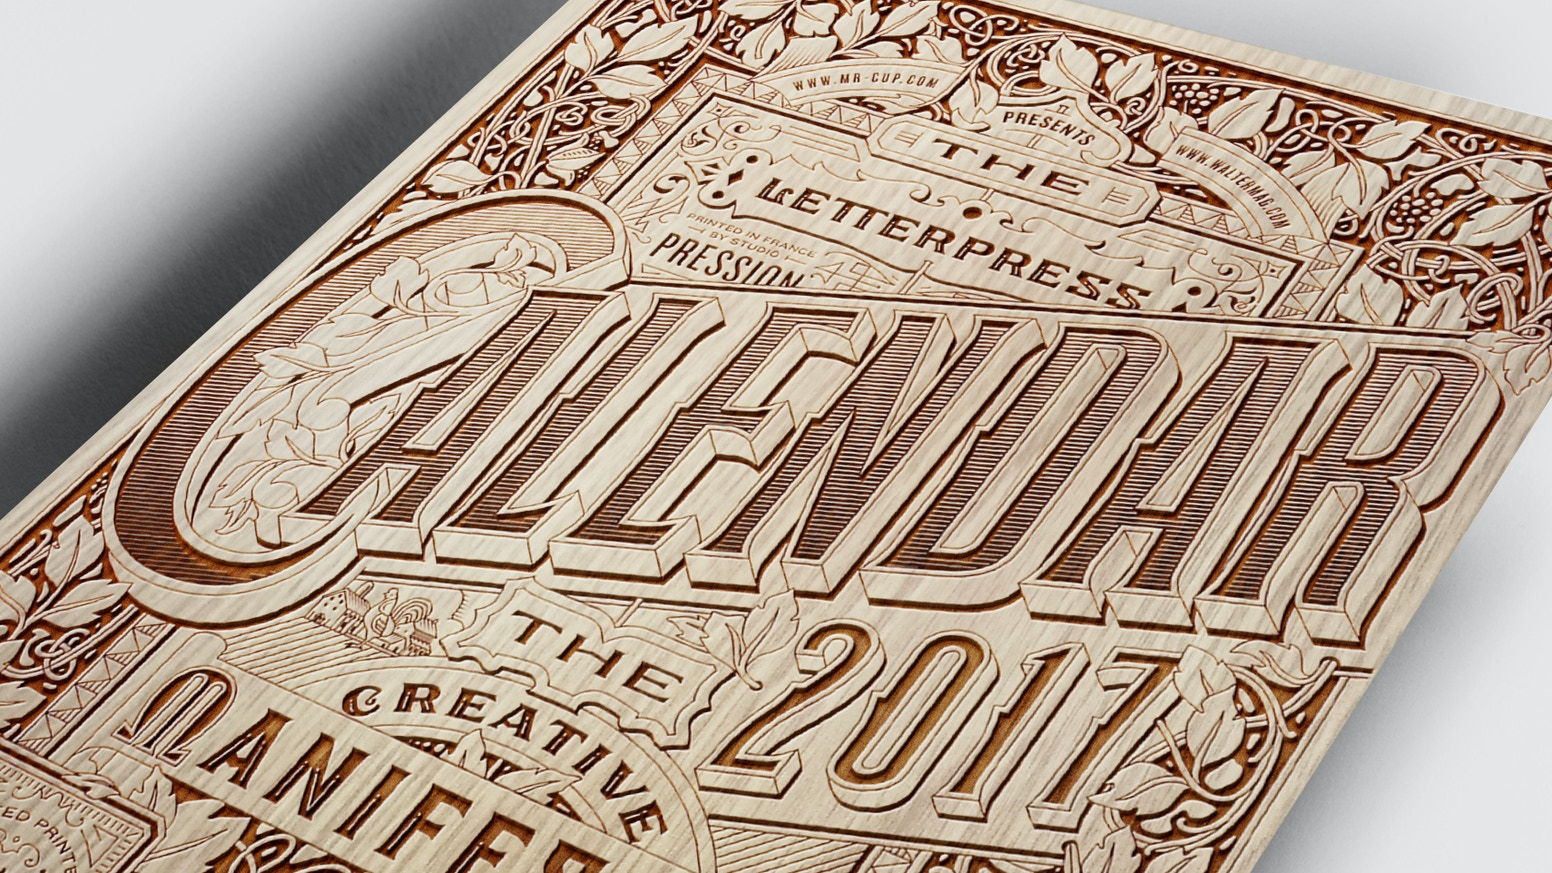 12 Inspiring letterpress word of wisdom printed on 700g color paper . Deluxe edition with wood engraved cover